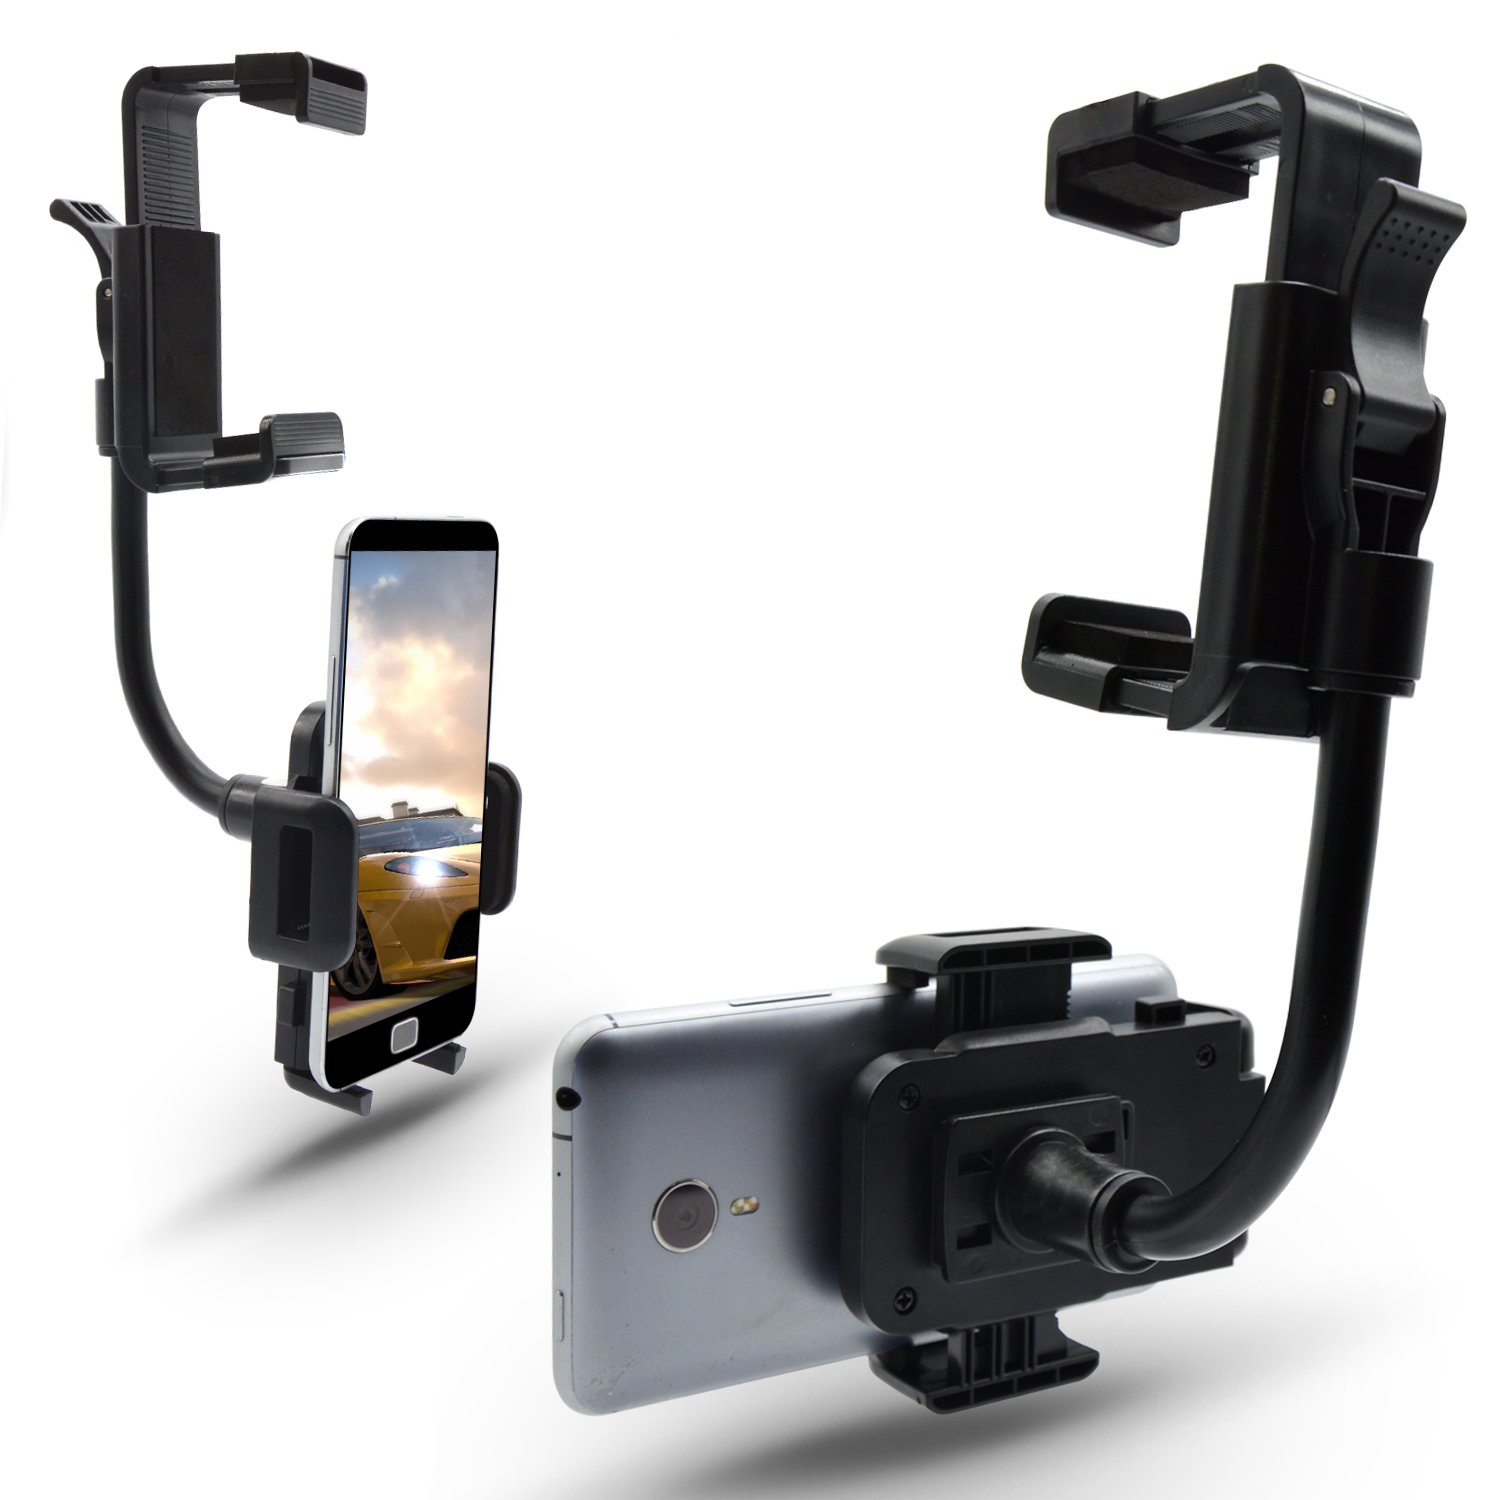 Flexible arm phone mount